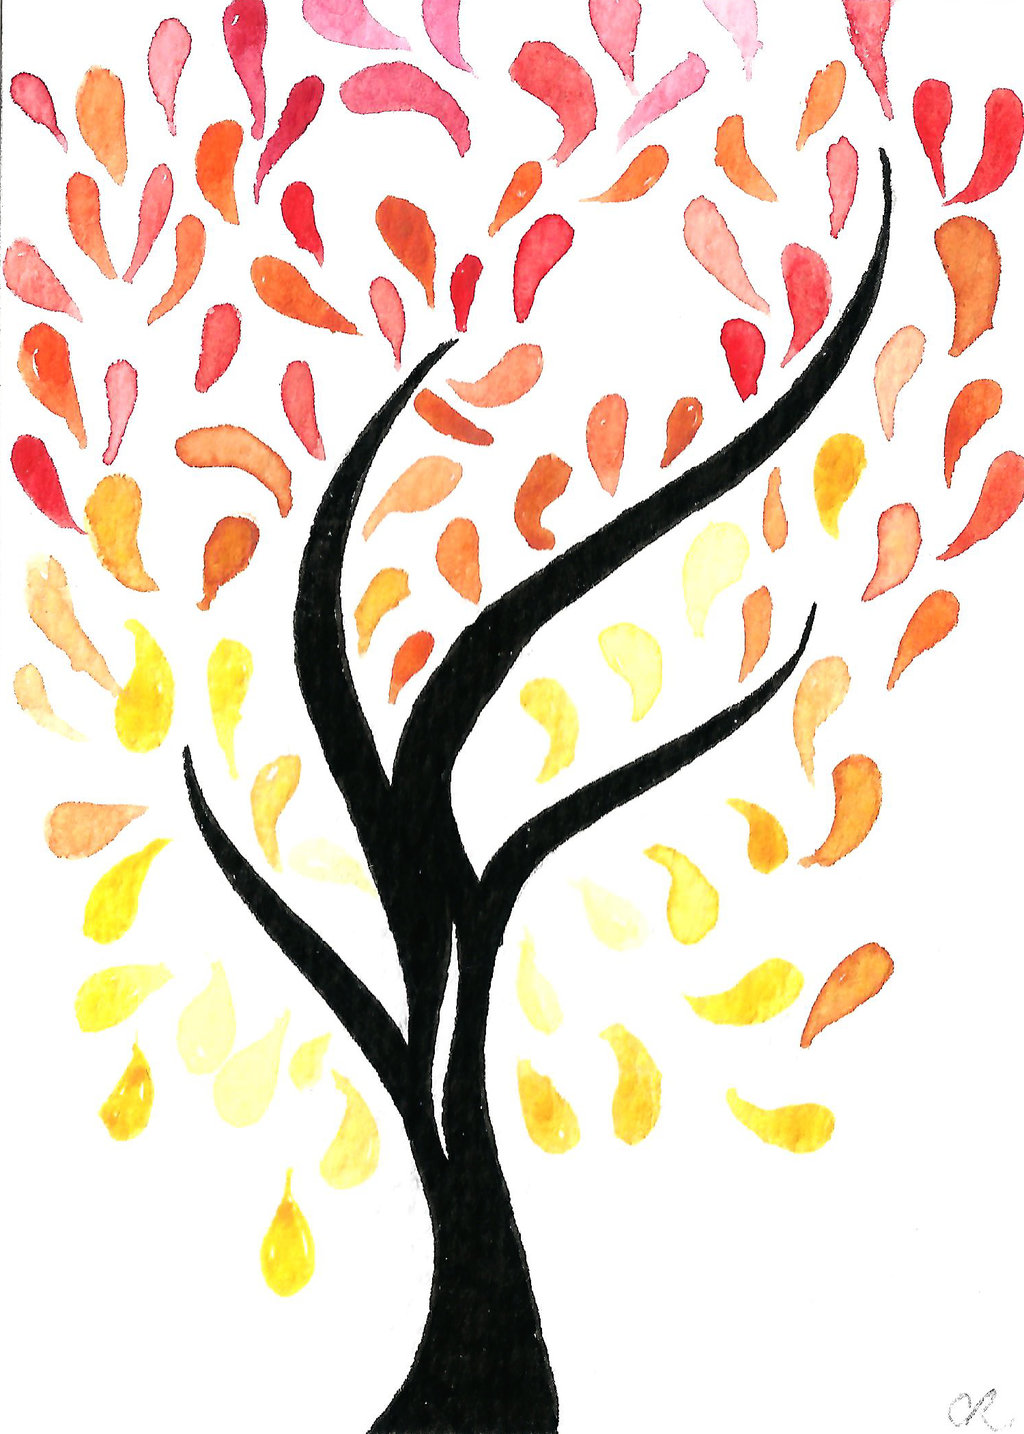 fall tree drawing at getdrawings com free for personal use fall rh getdrawings com fall tree pictures clip art fall tree branch clip art